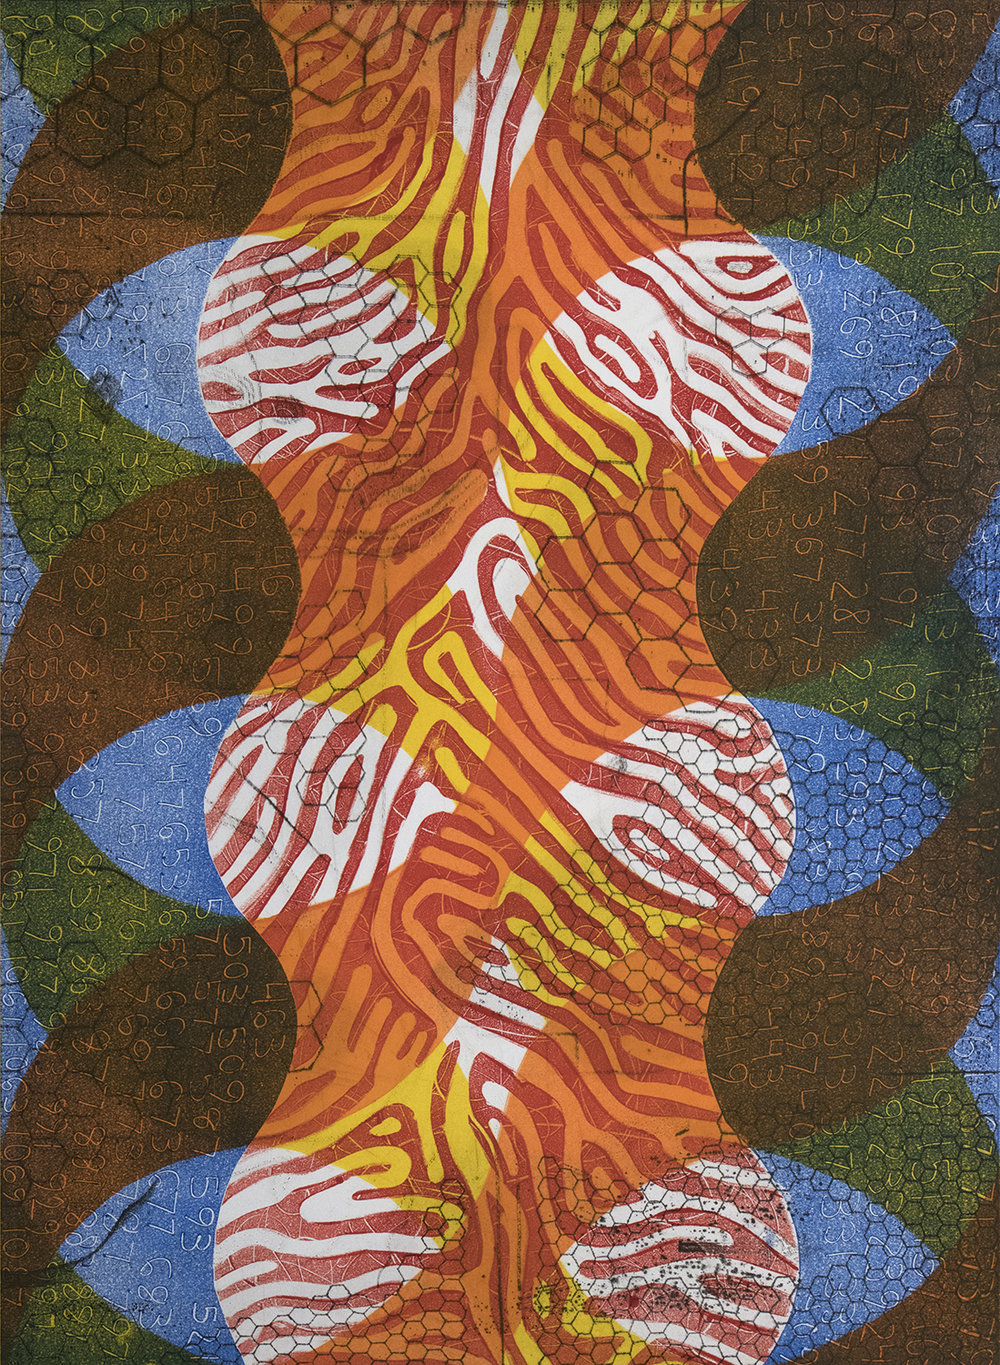 orient : dominate, v. 2, 2017, monoprint, 33 x 24 in